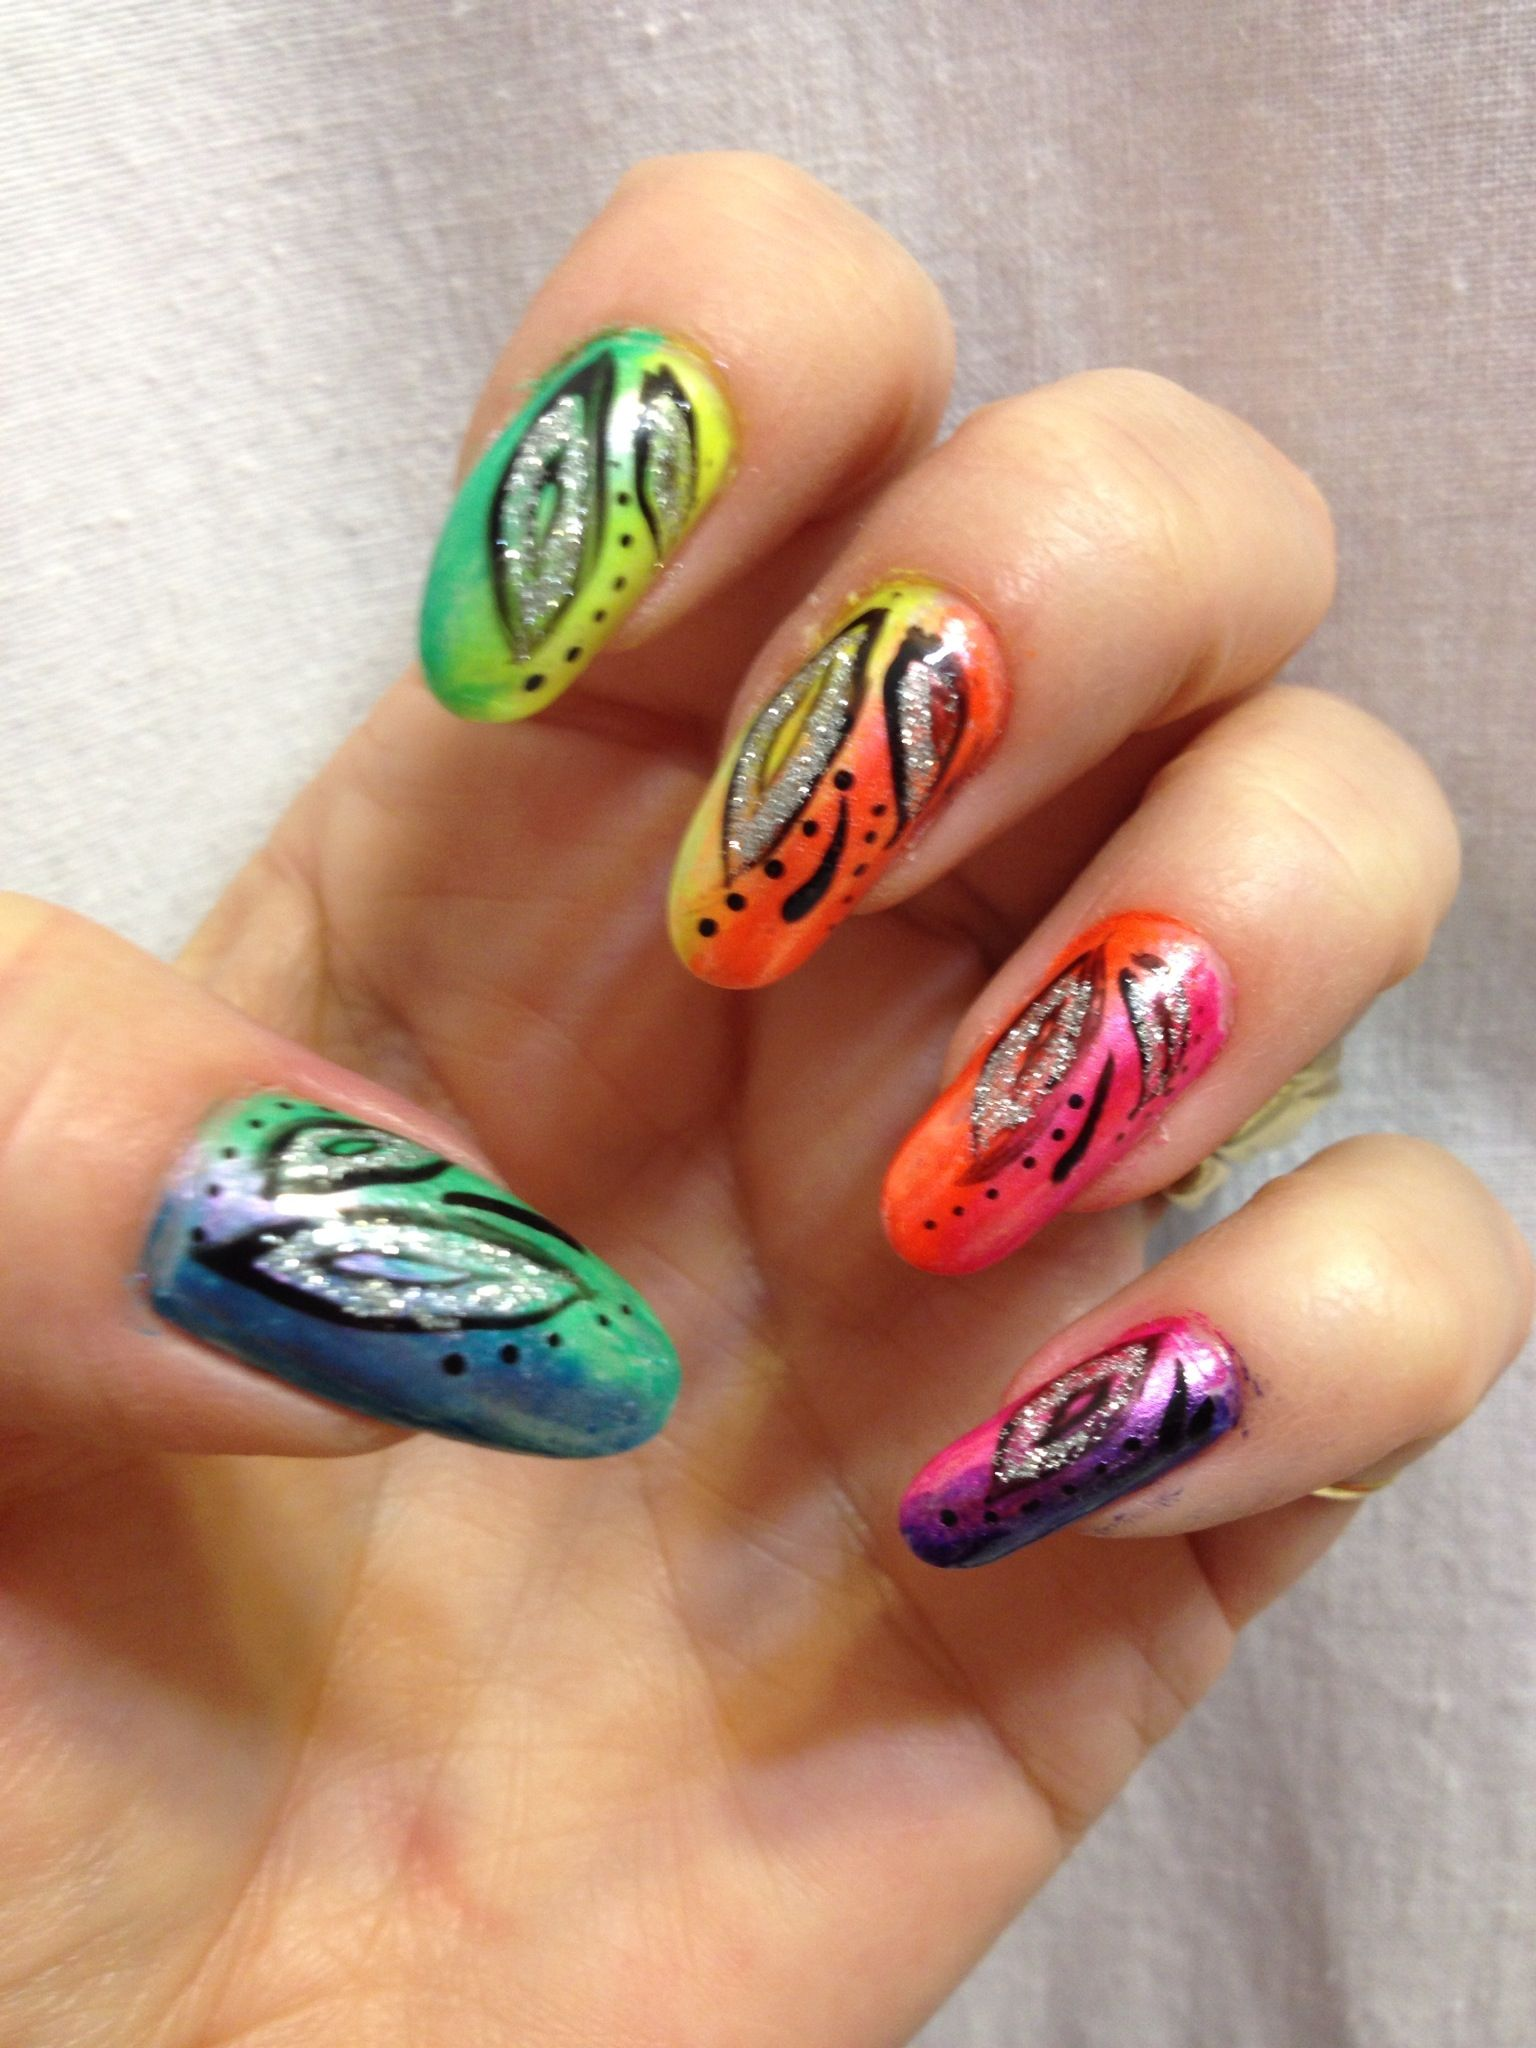 Rainbow nails.by Amber Howe using makeup sponges   Nail Art ...